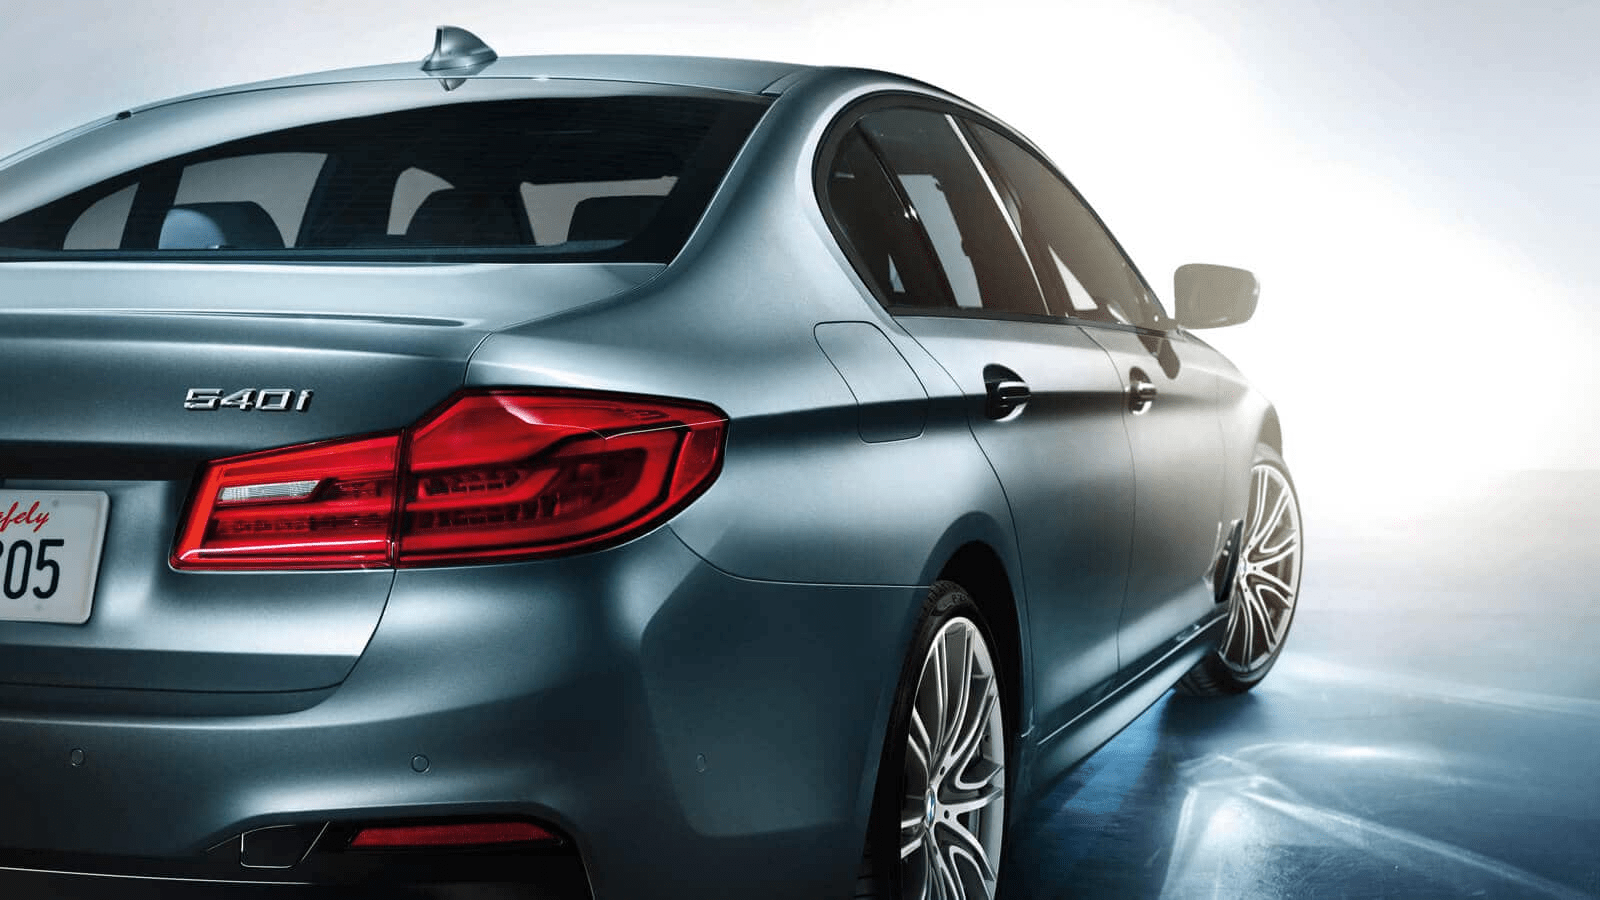 2020 BMW Series 5 rear profile exterior